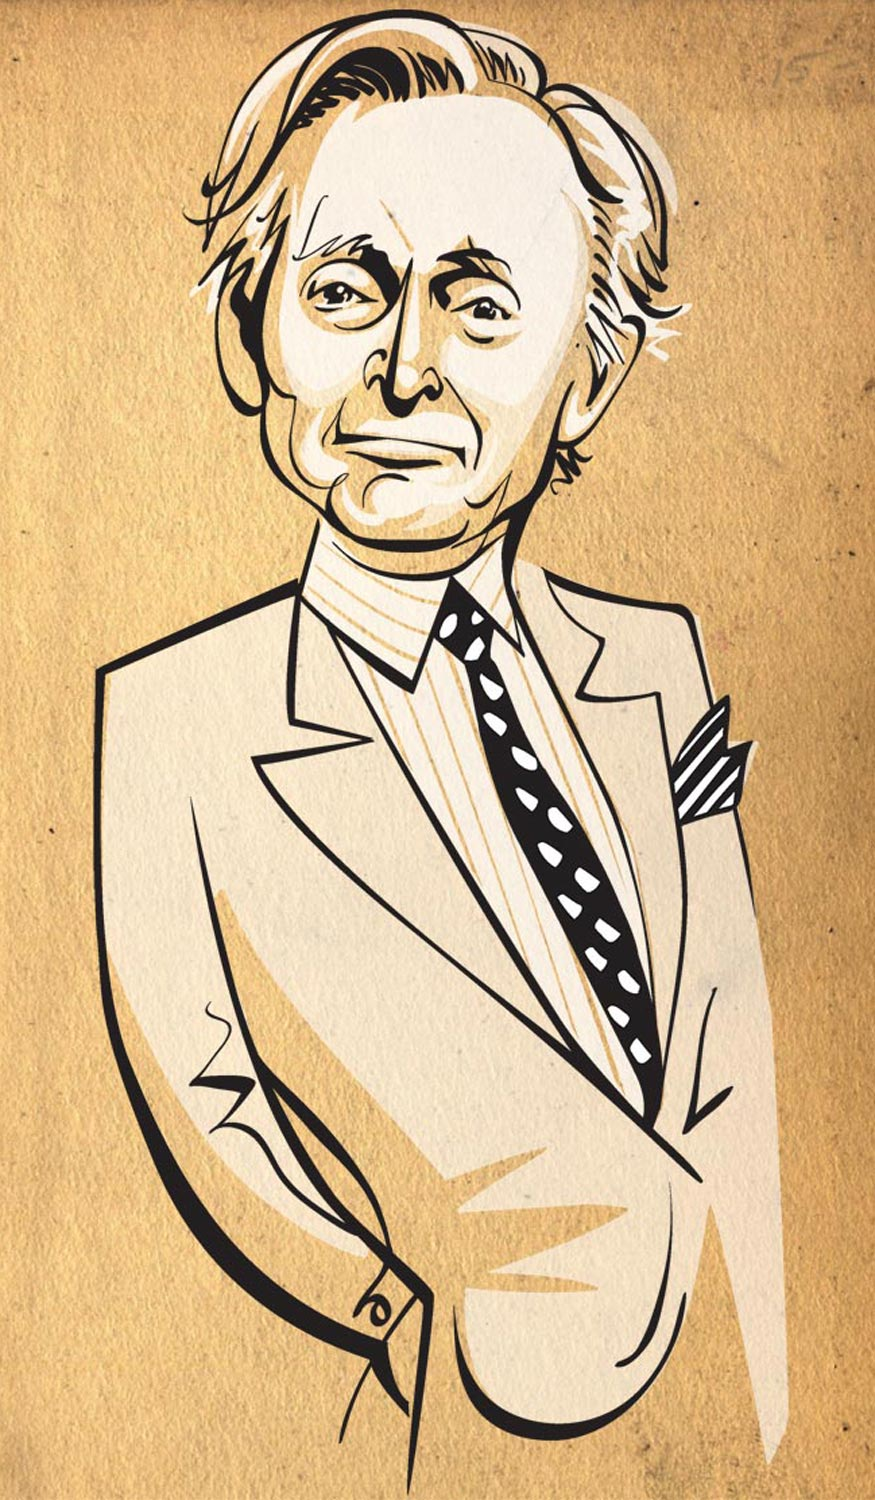 Tom Wolfe,  Intelligent Life Magazine